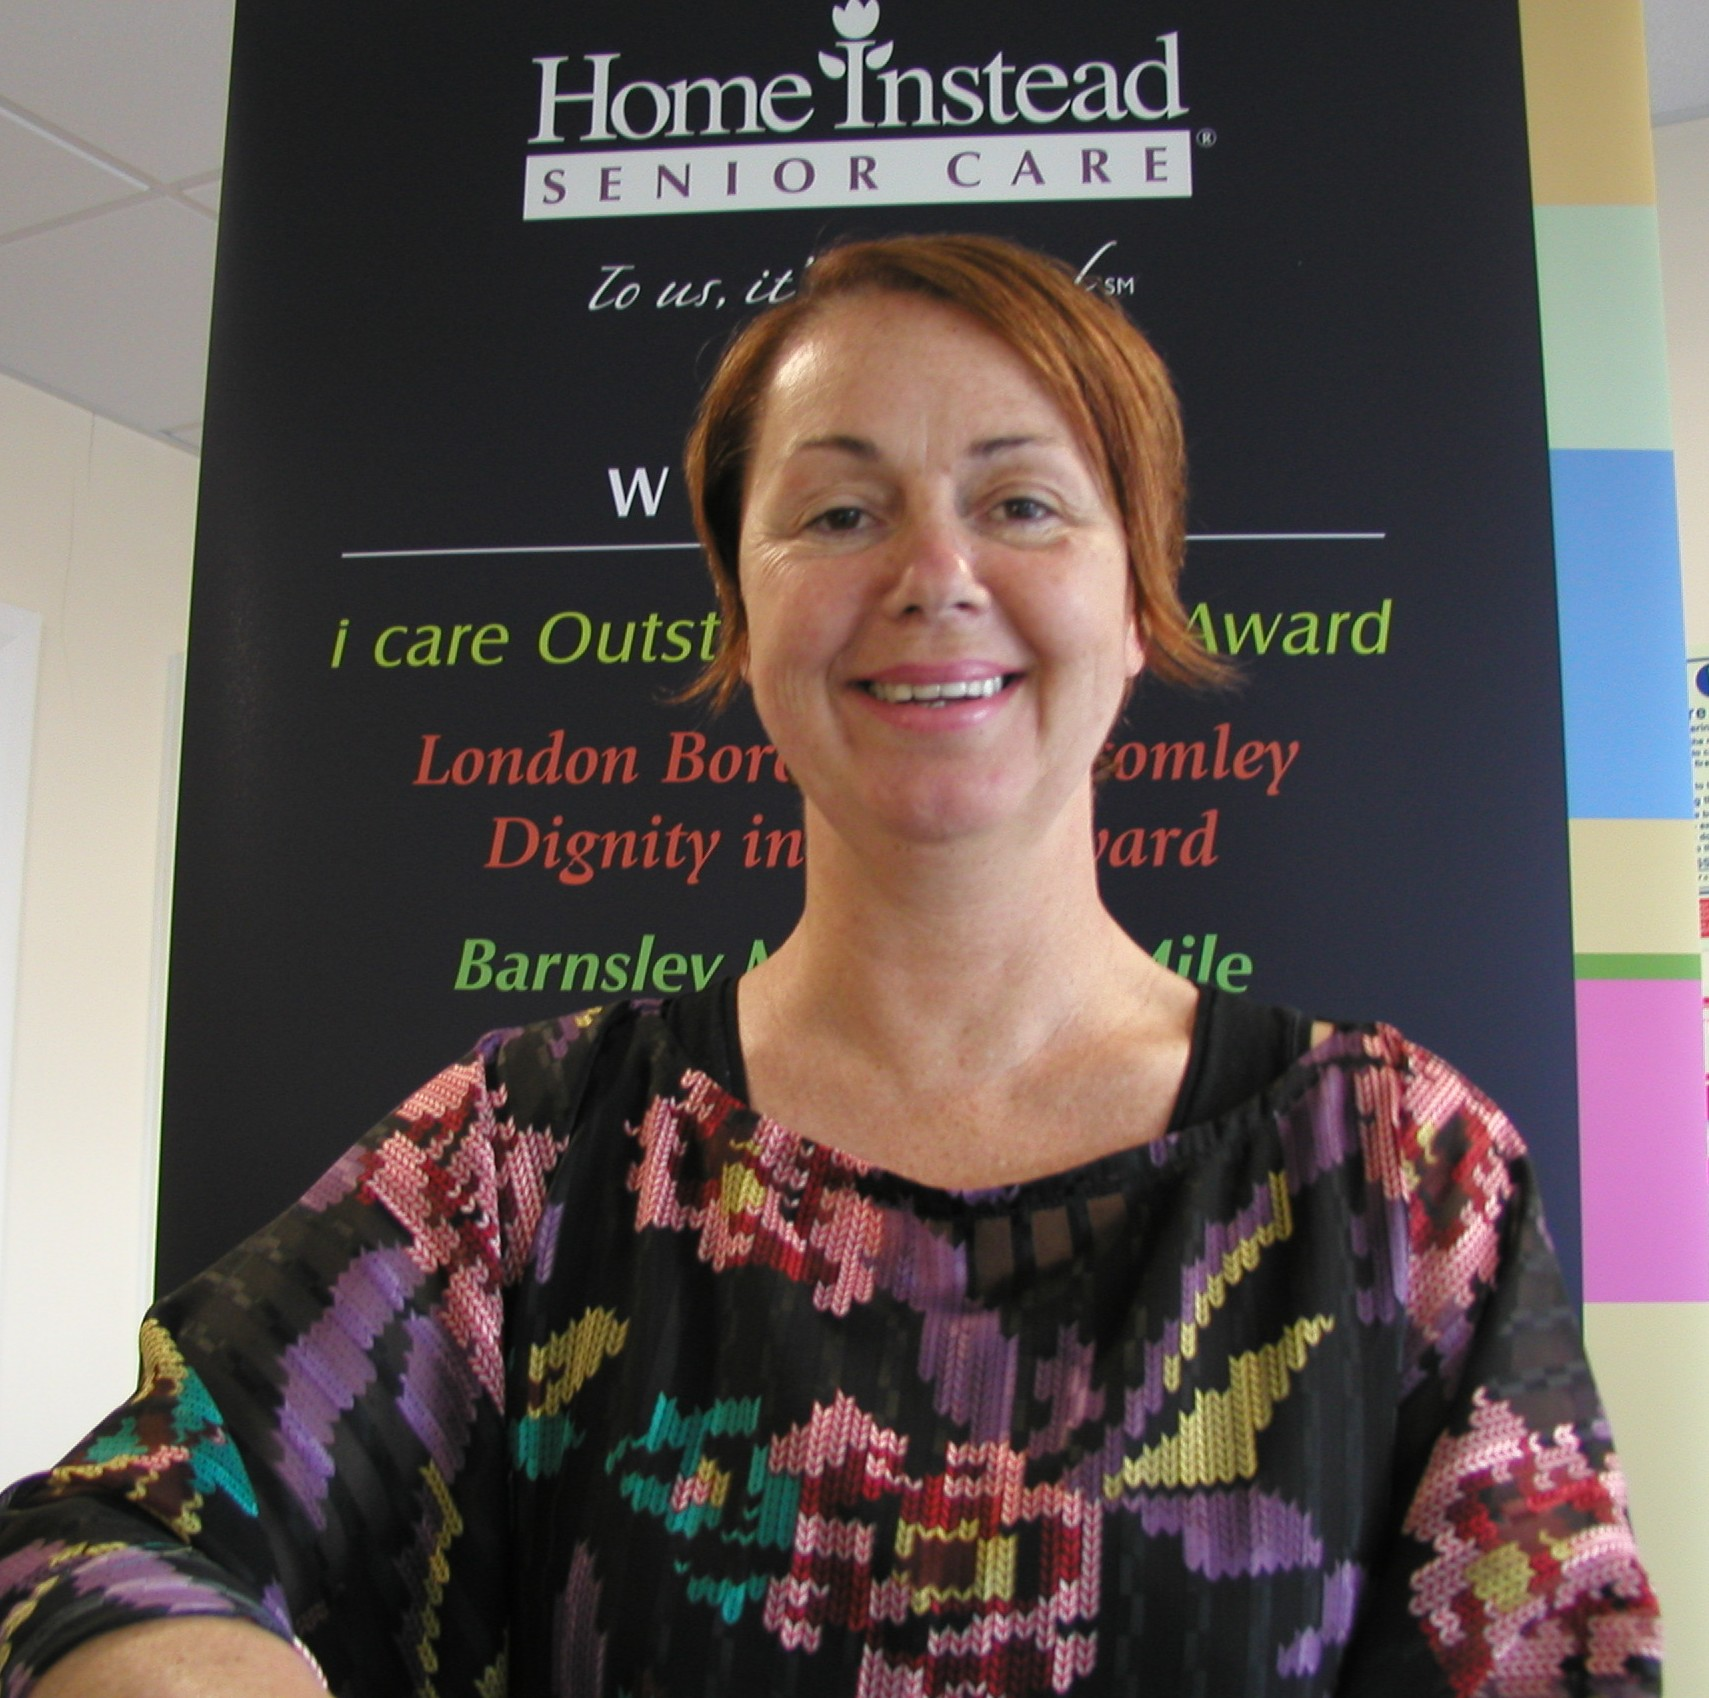 Home Instead Senior Care Manchester owner Tracey Chuwen